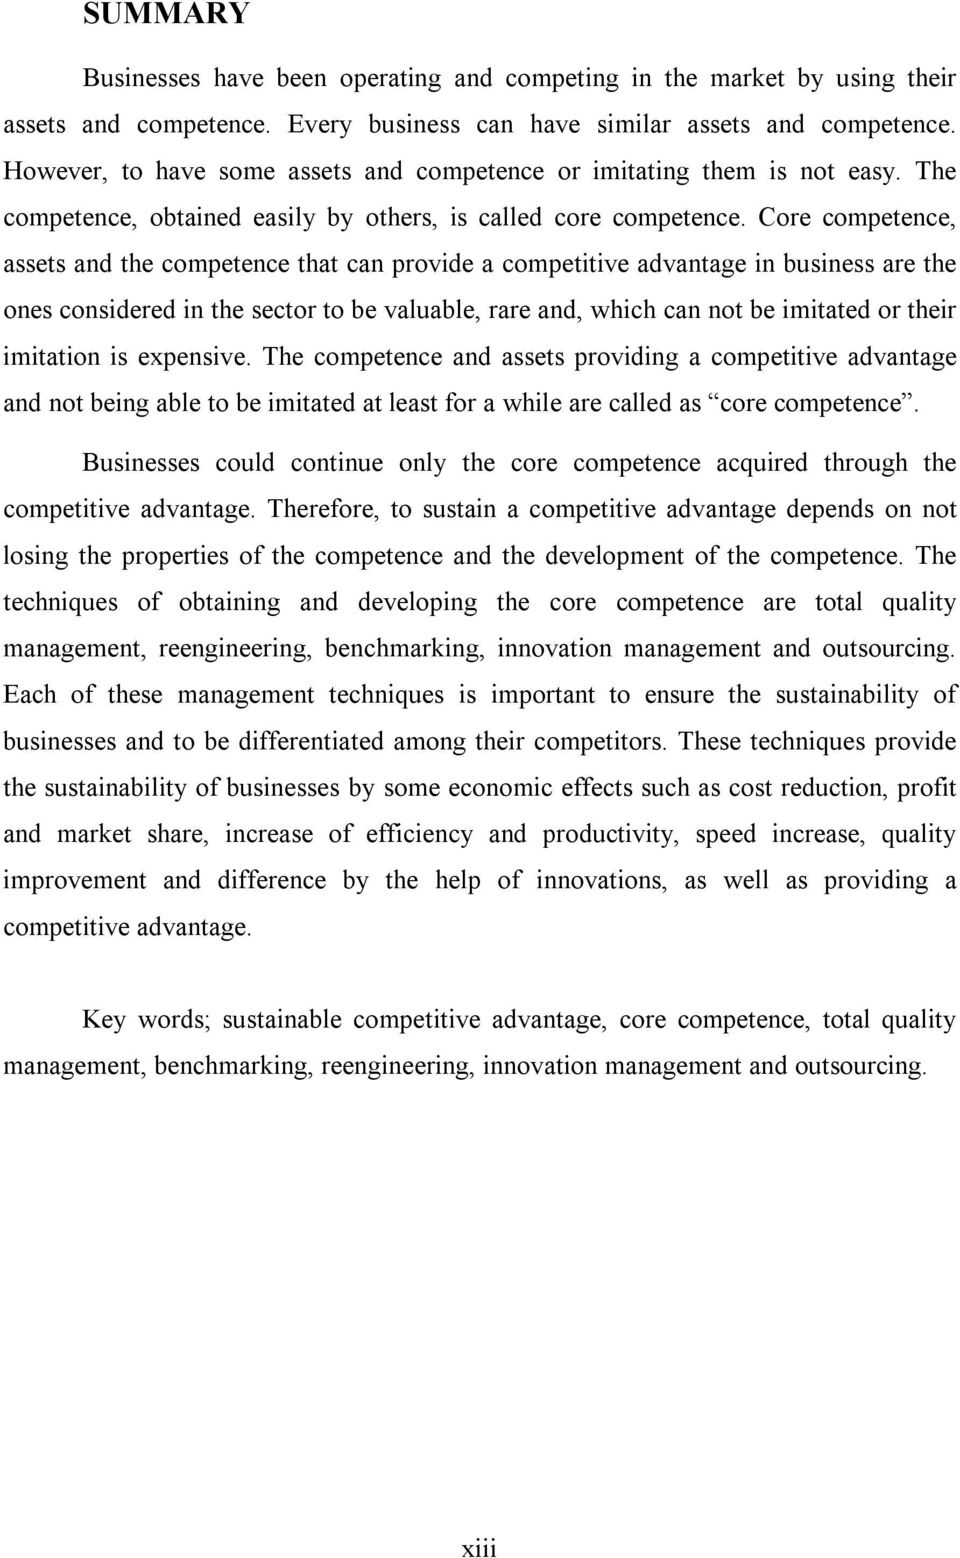 Core competence, assets and the competence that can provide a competitive advantage in business are the ones considered in the sector to be valuable, rare and, which can not be imitated or their